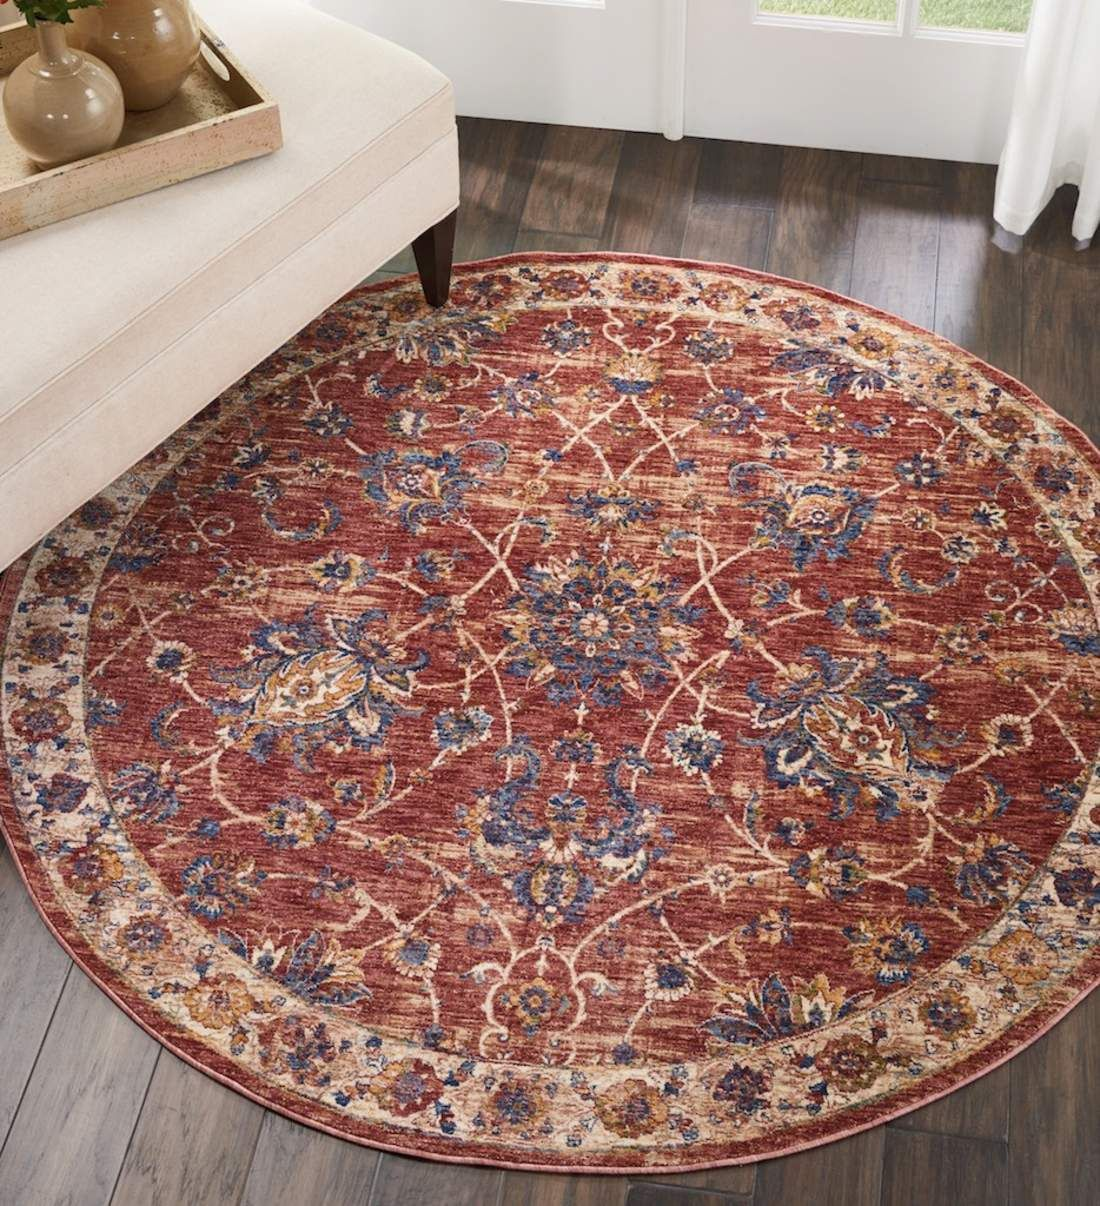 Lagos R Round Rugs Colorful Rugs Rugs